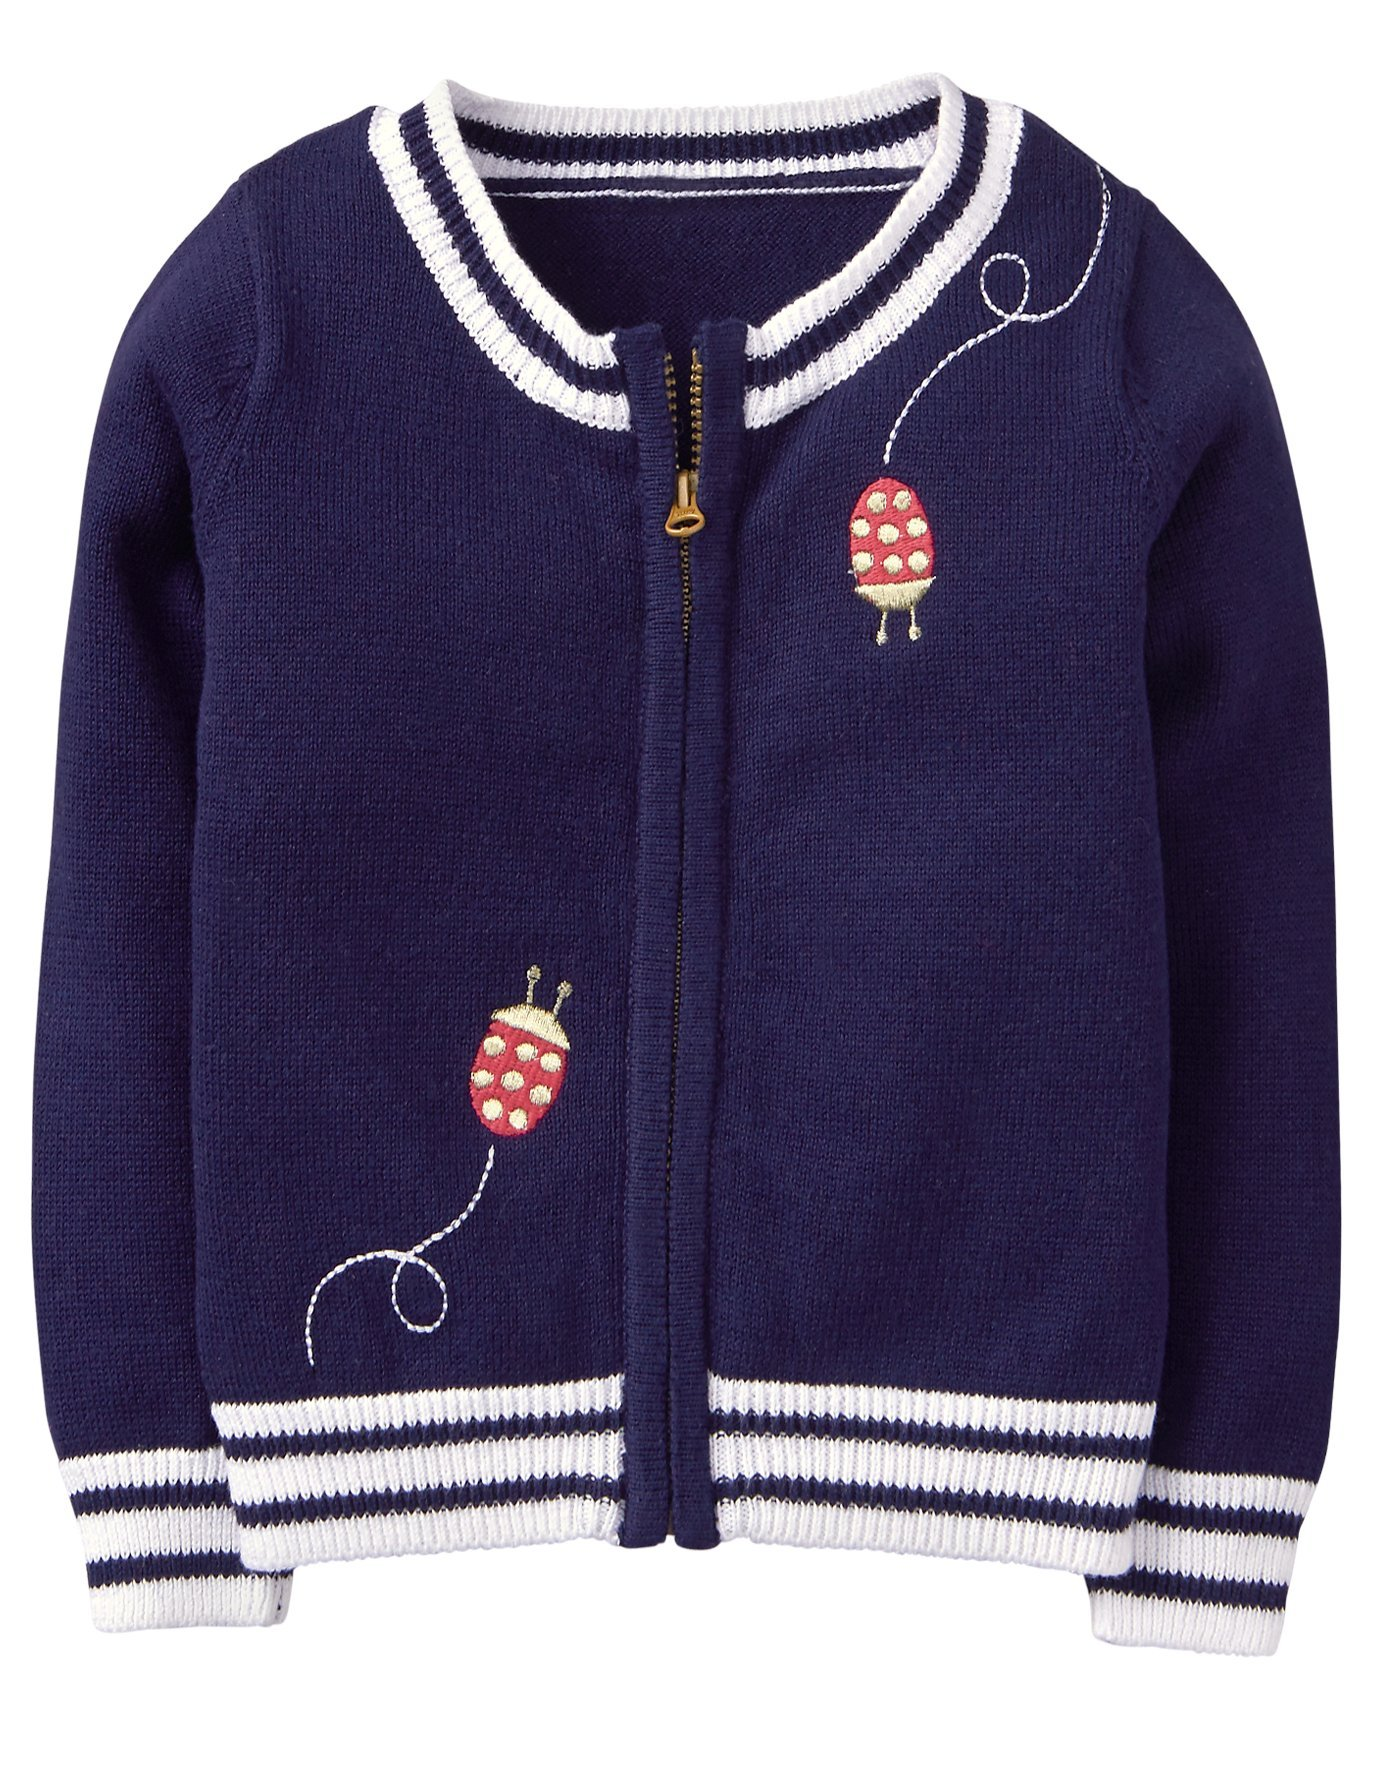 Gymboree Girls' Toddler Long Sleeve Zip Ribbed Cardigan, Navy Ladybug, 4T by Gymboree (Image #1)